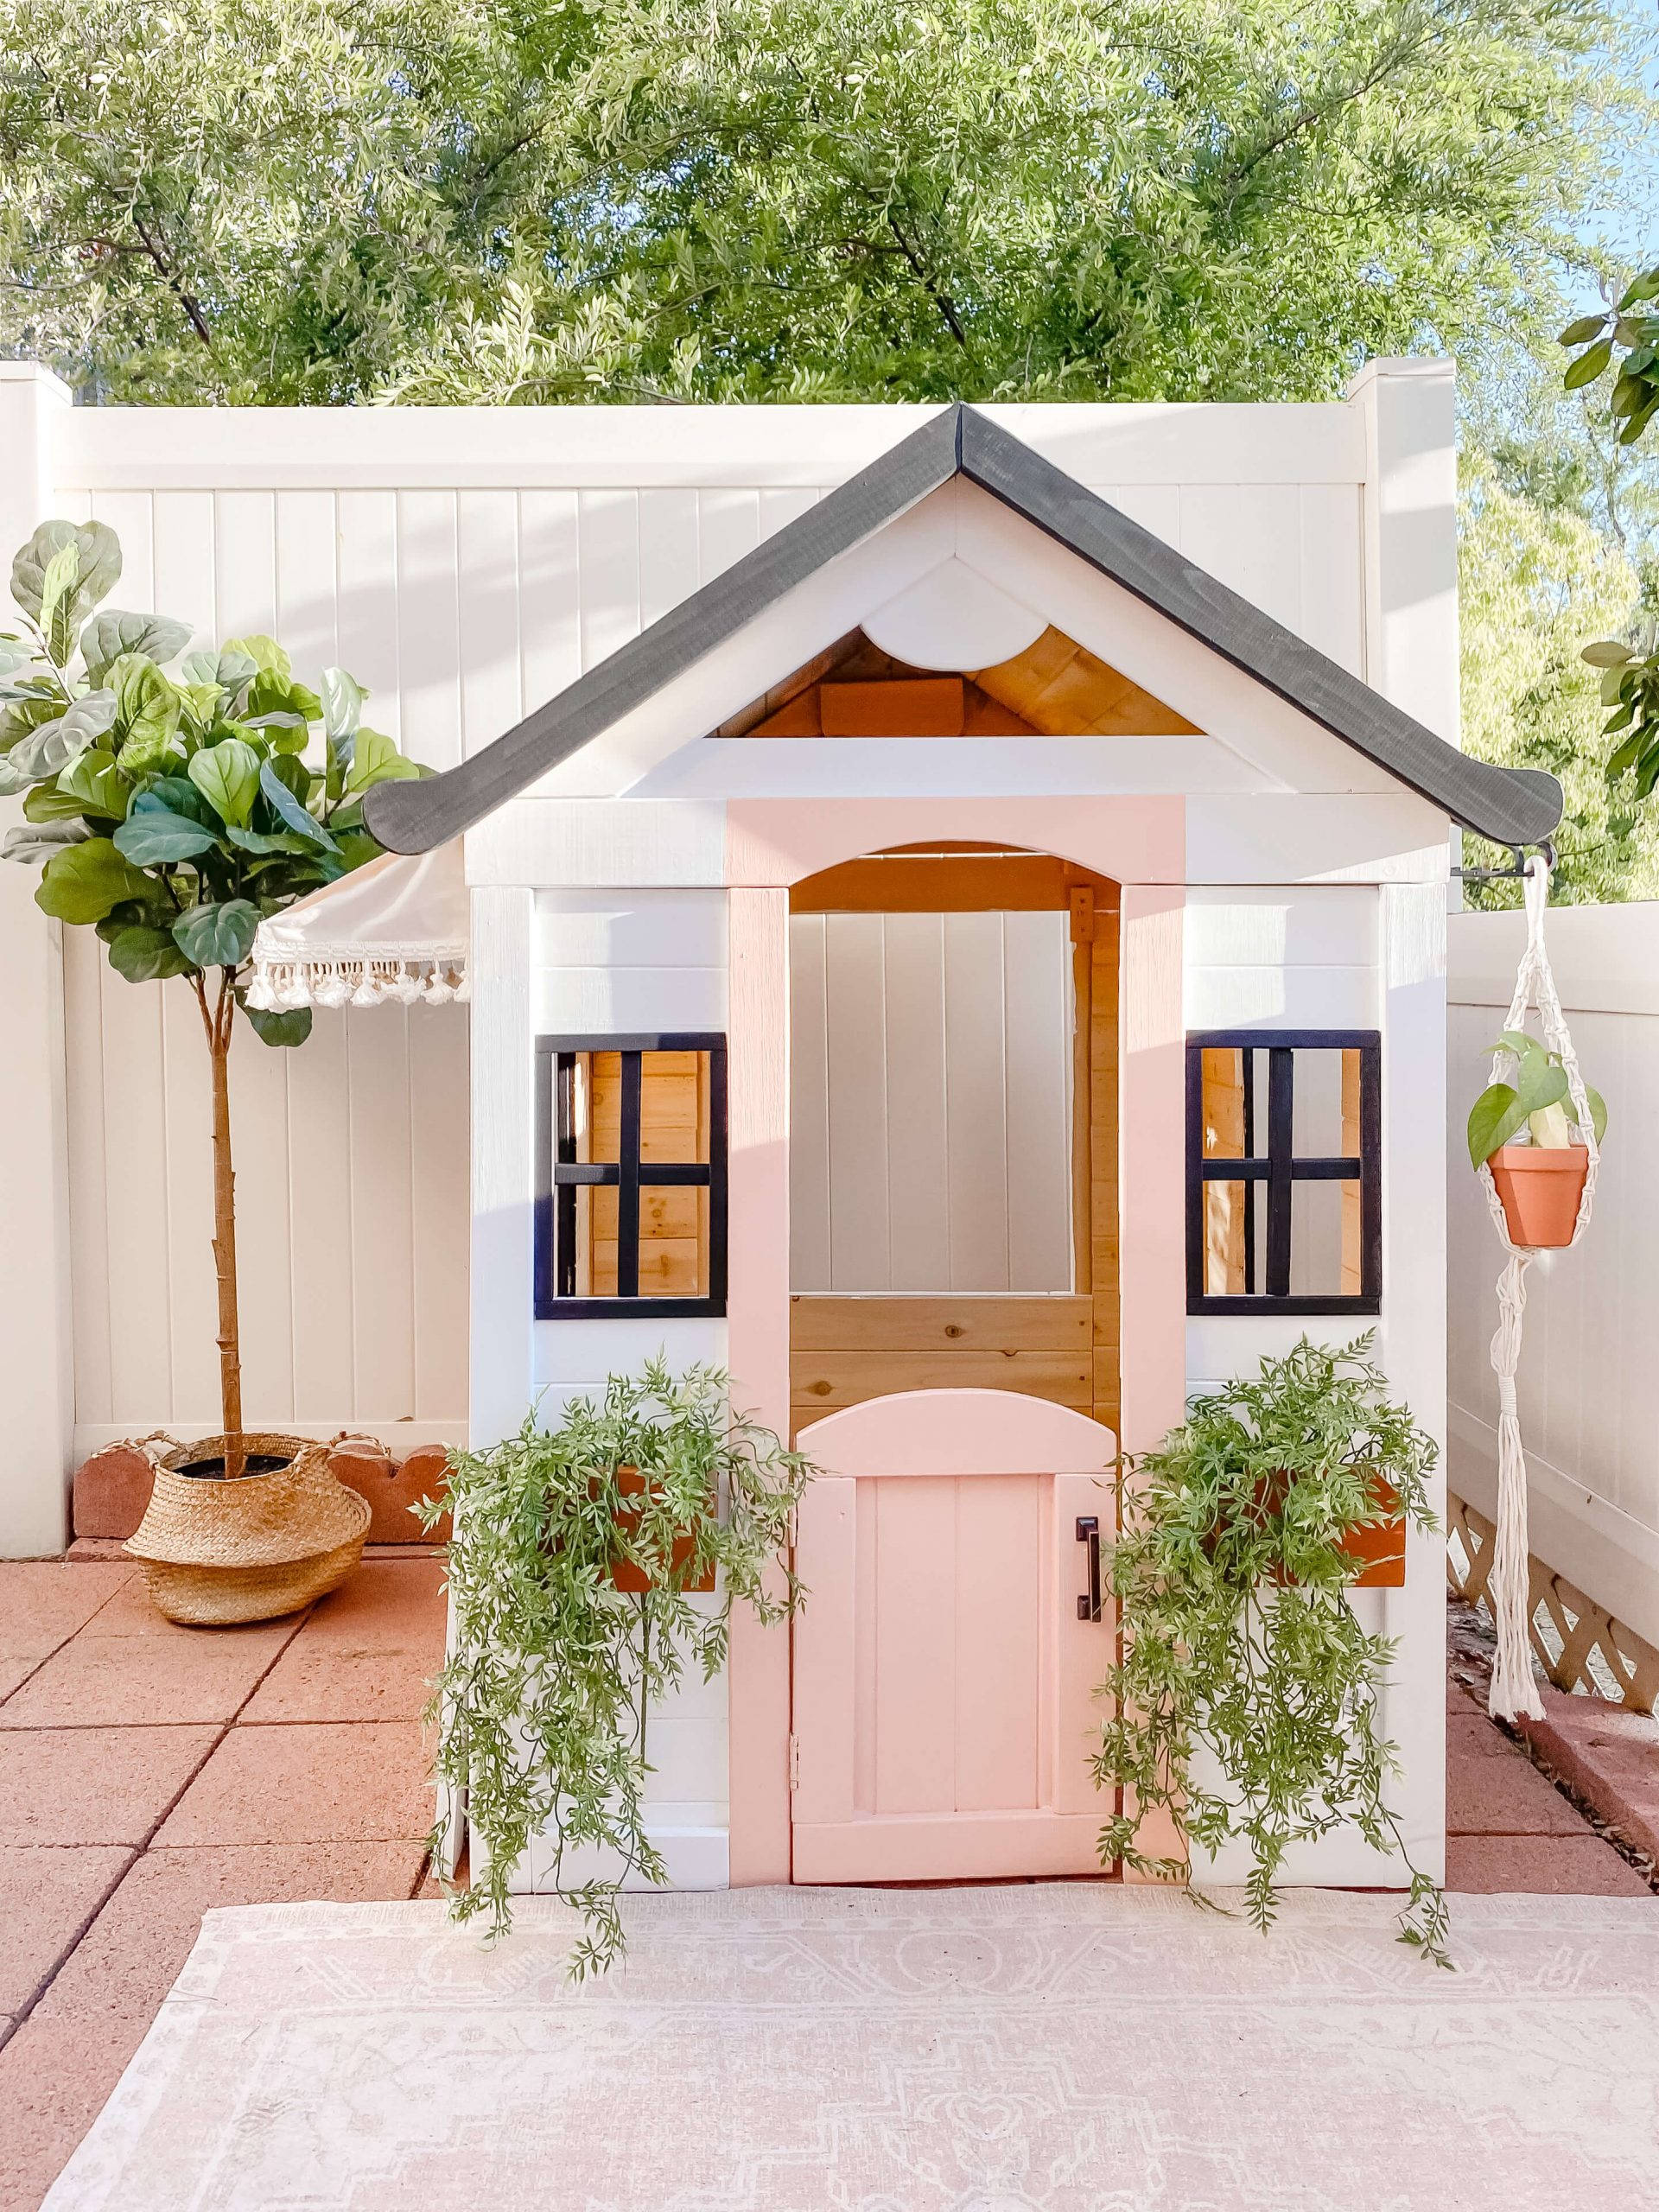 Playhouse Makeover - Playhouse Hacks - Wooden Playhouse - Cafe Playhouse - DIY Kids Table - DIY Awning - tiffanieanne.com